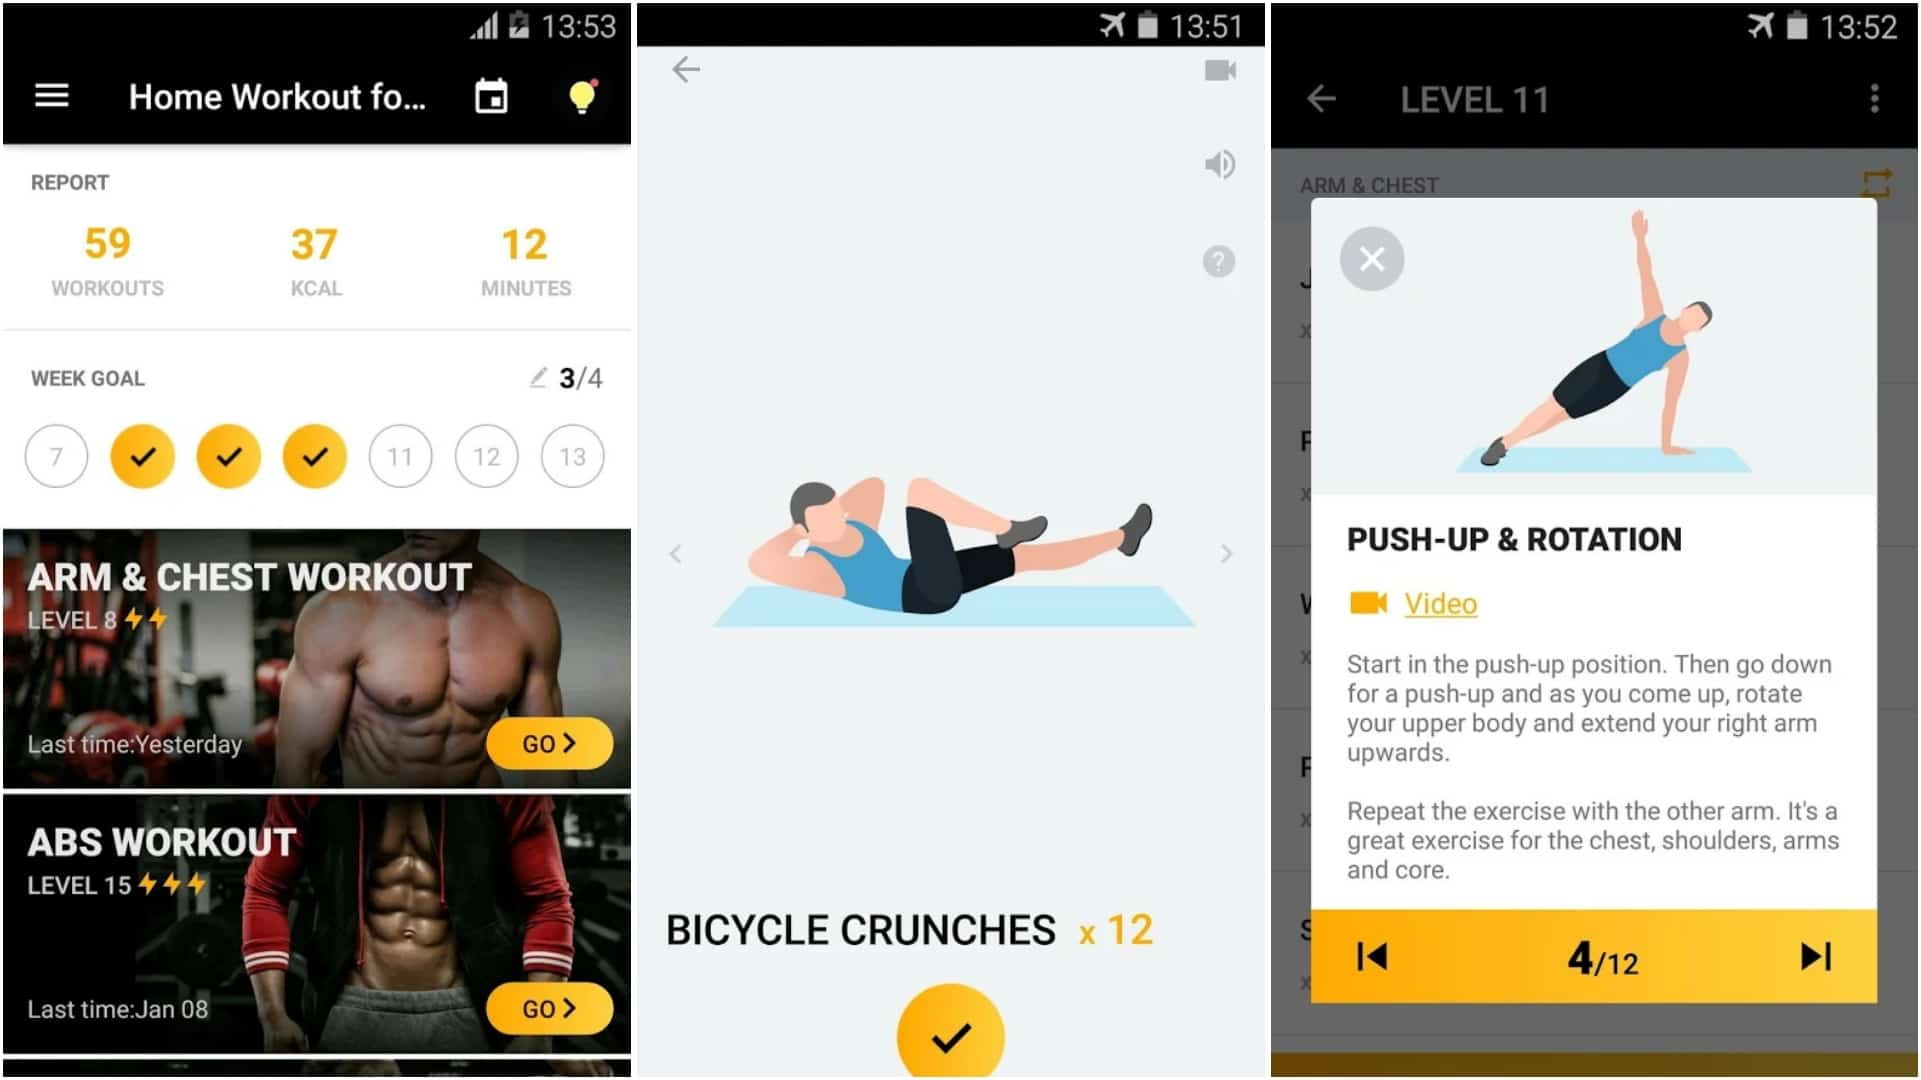 Home Workout for Men Bodybuilding app grid